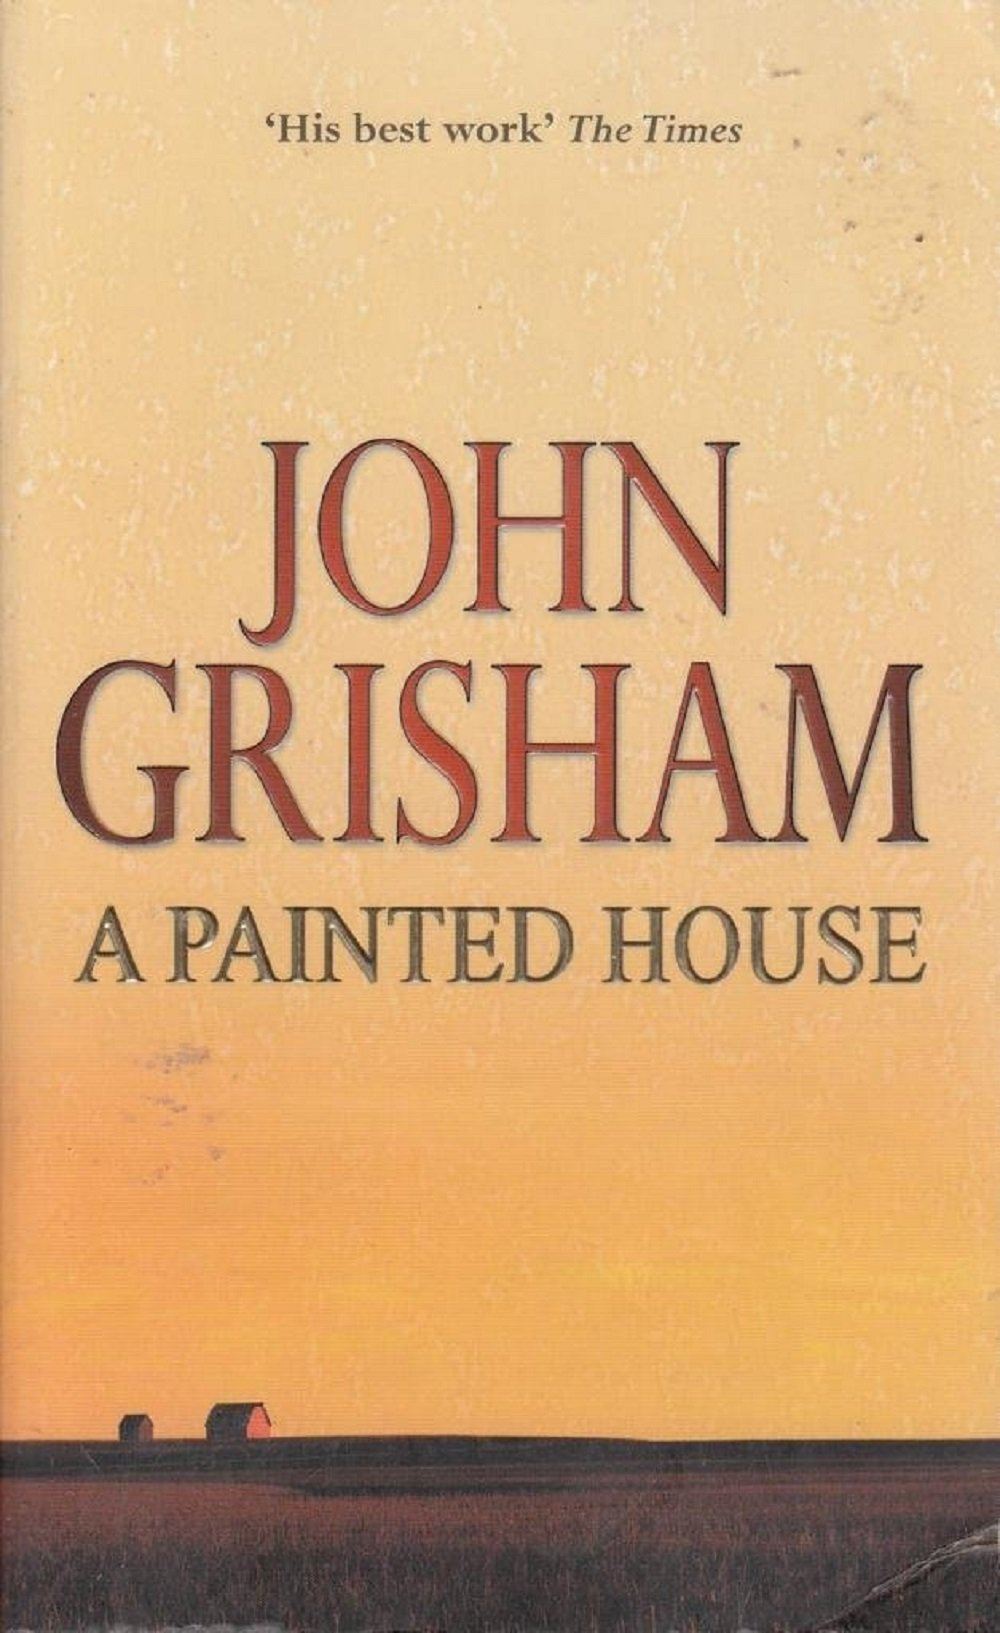 Read A Painted House online free